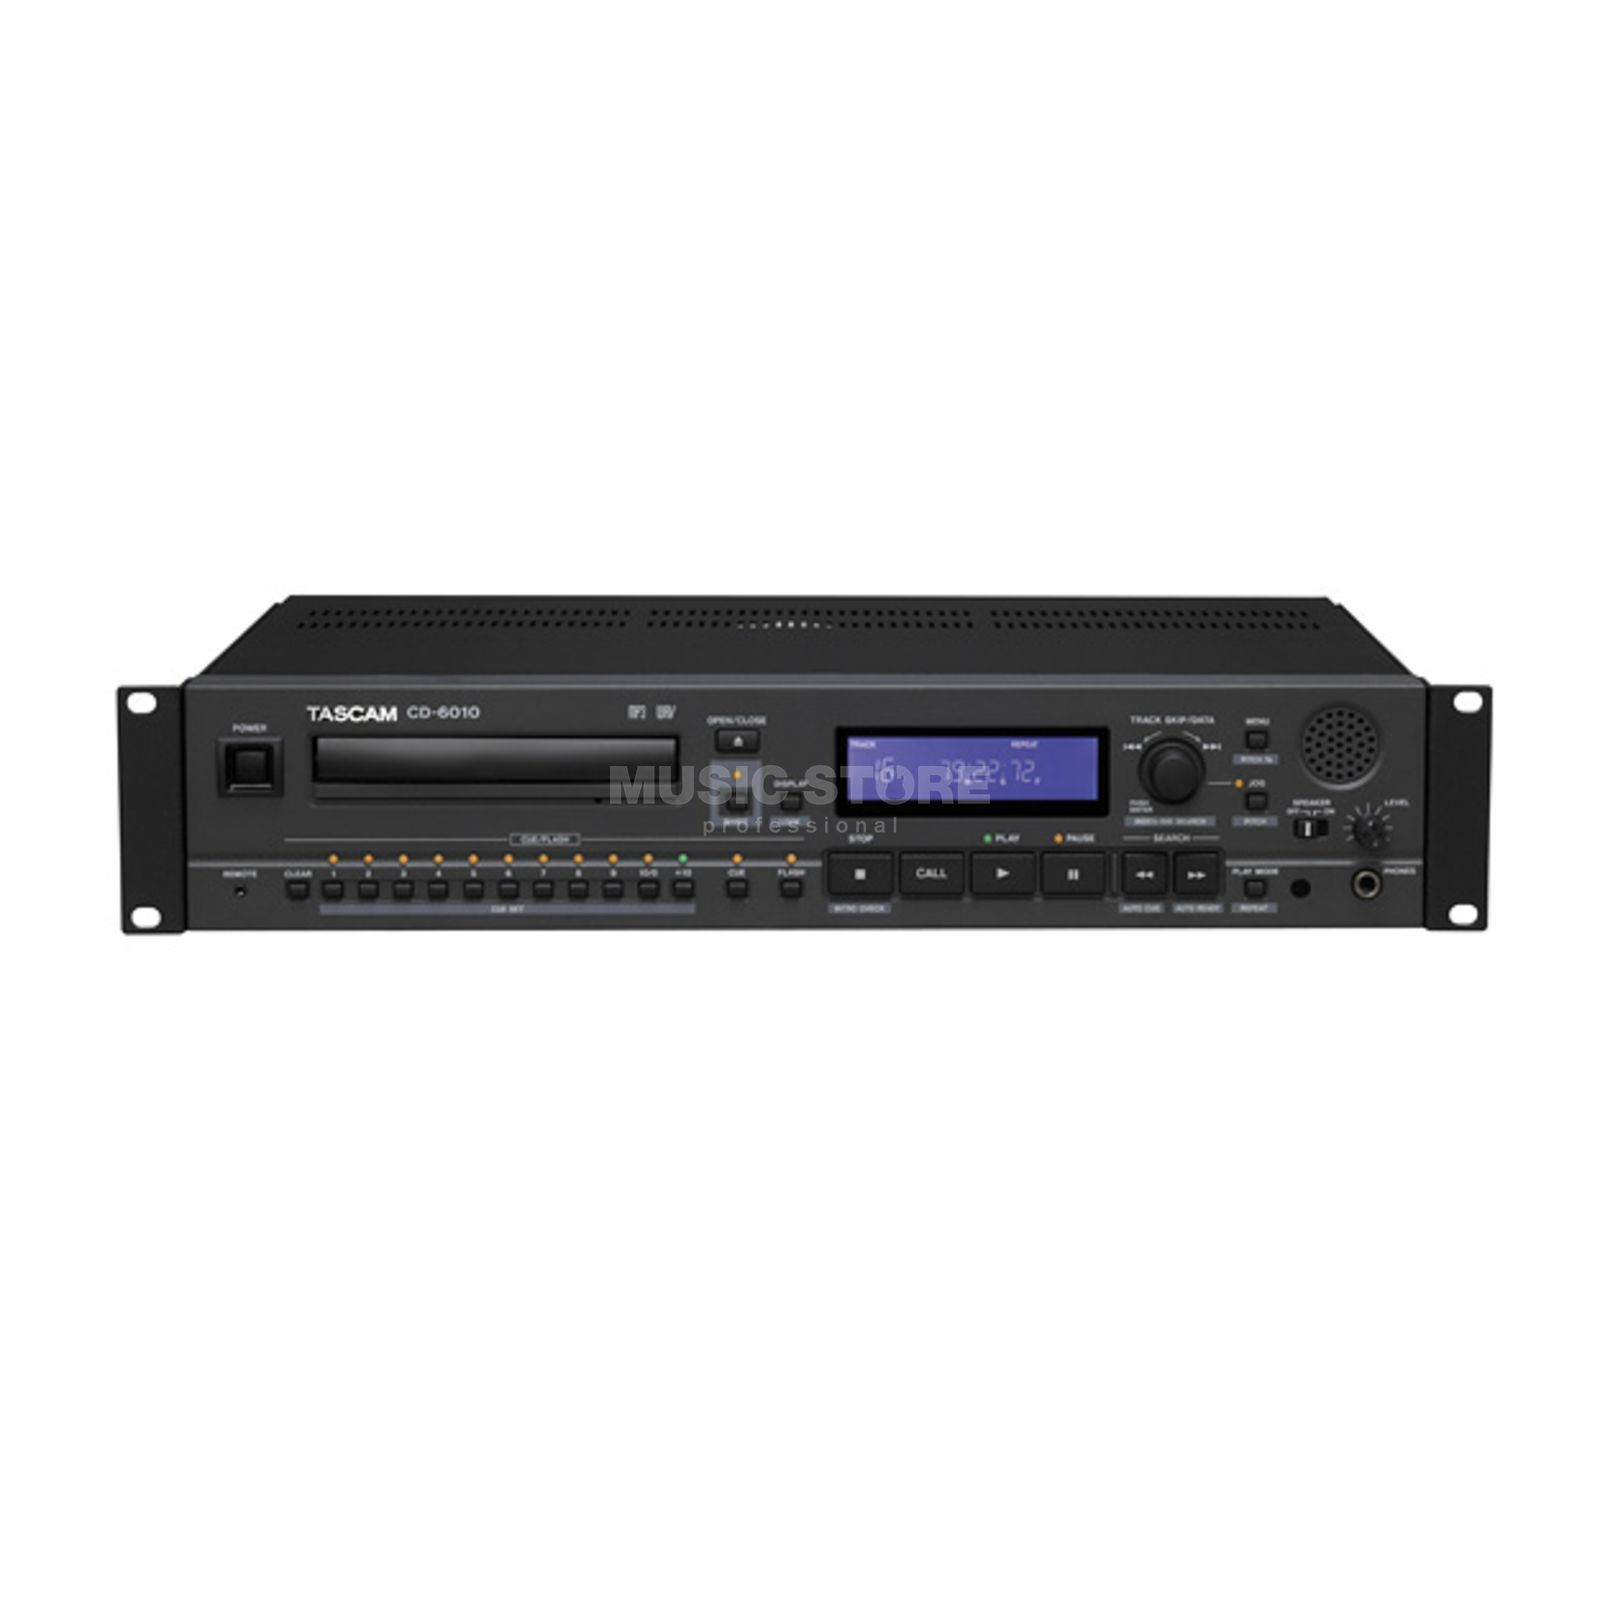 Tascam CD-6010 High-Quality Stereo CD Player Product Image